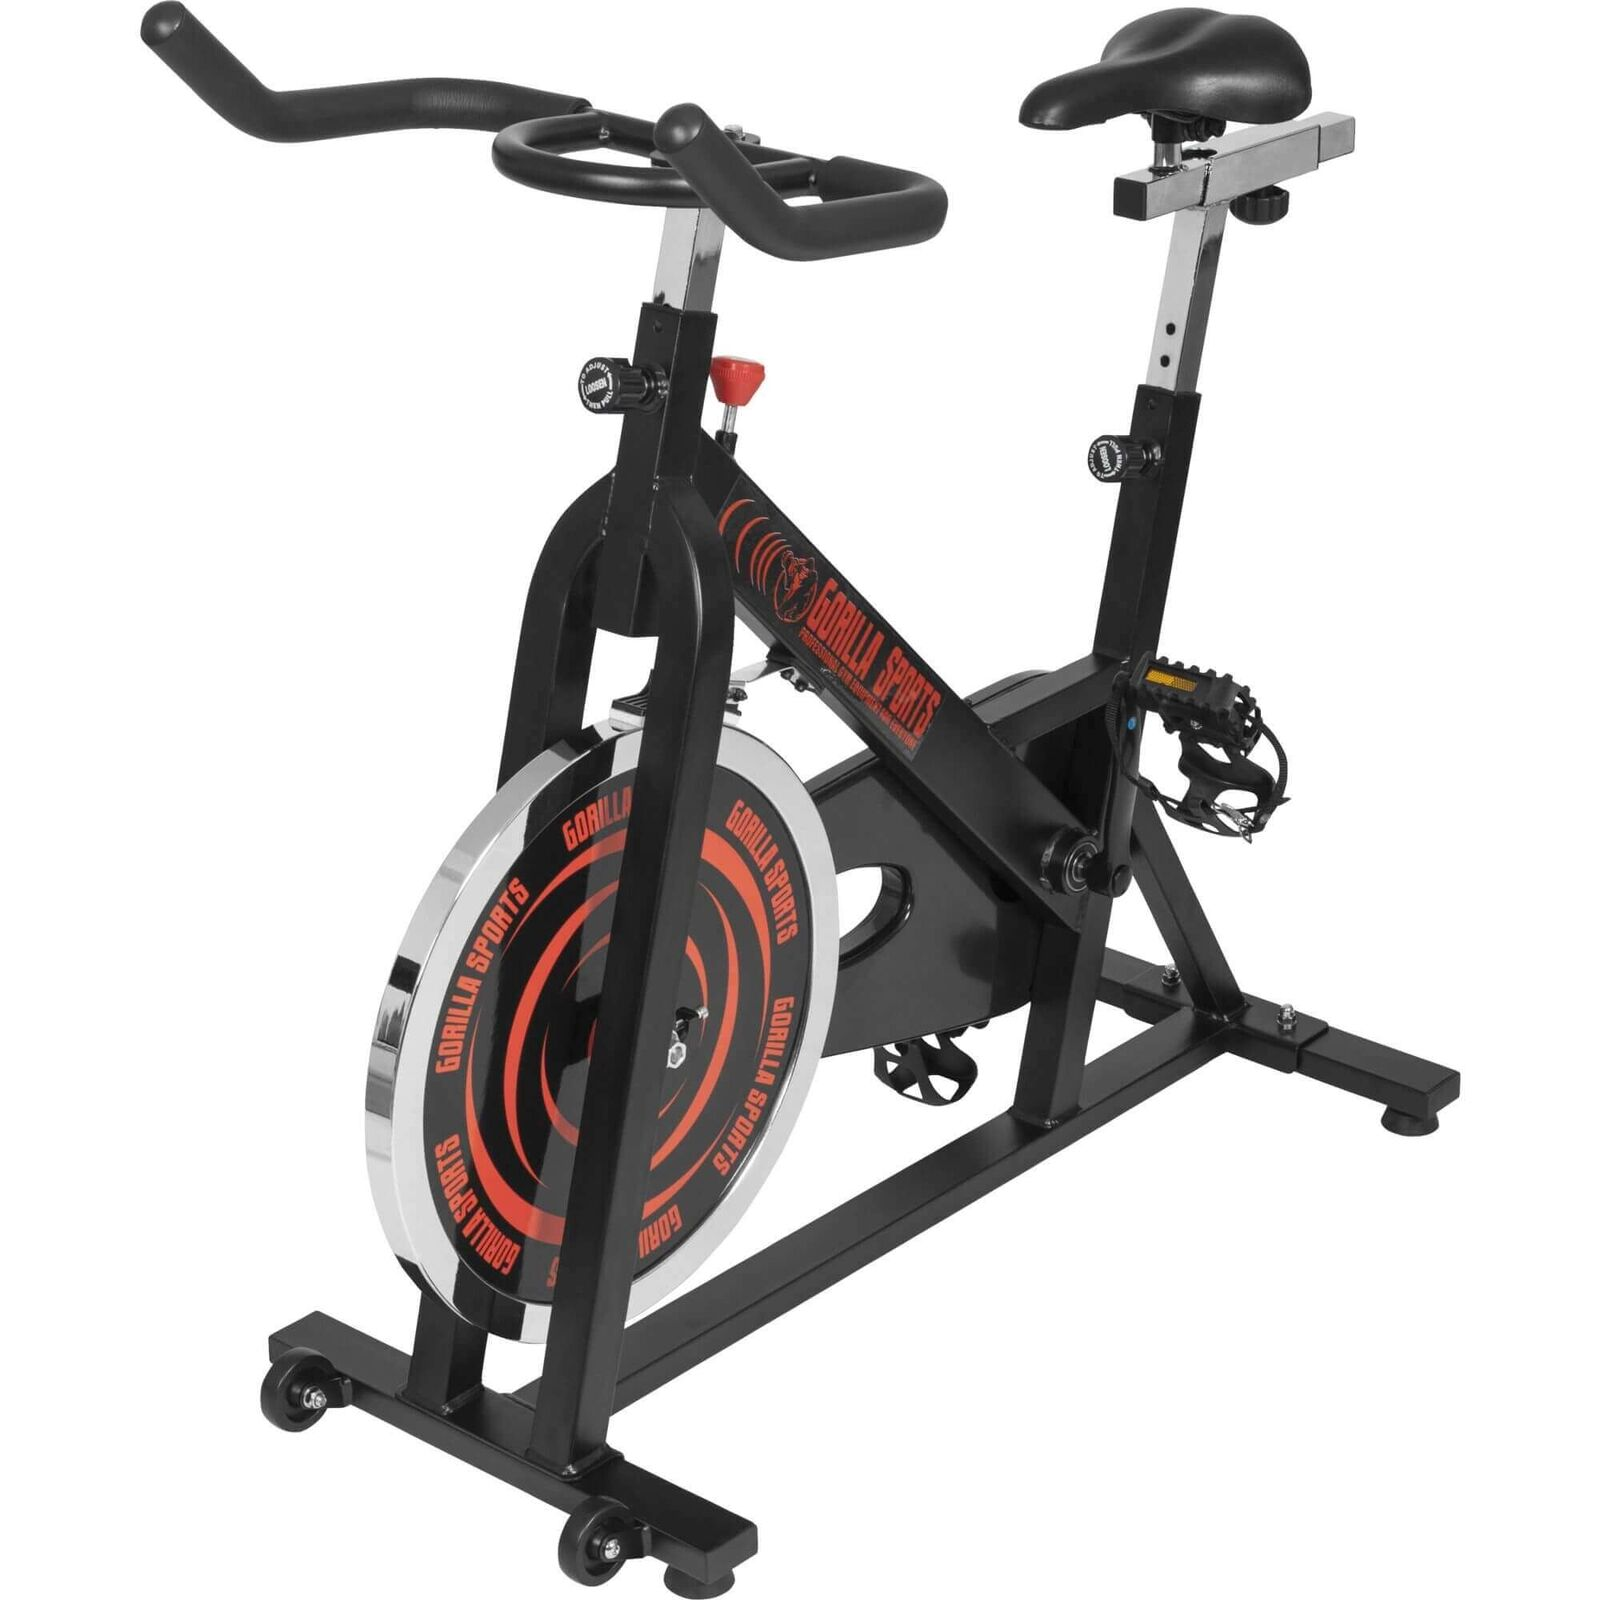 GORILLA SPORTS® Indoor Cycling Fitness Bike Ergometer Fahrrad Rad Heimtrainer